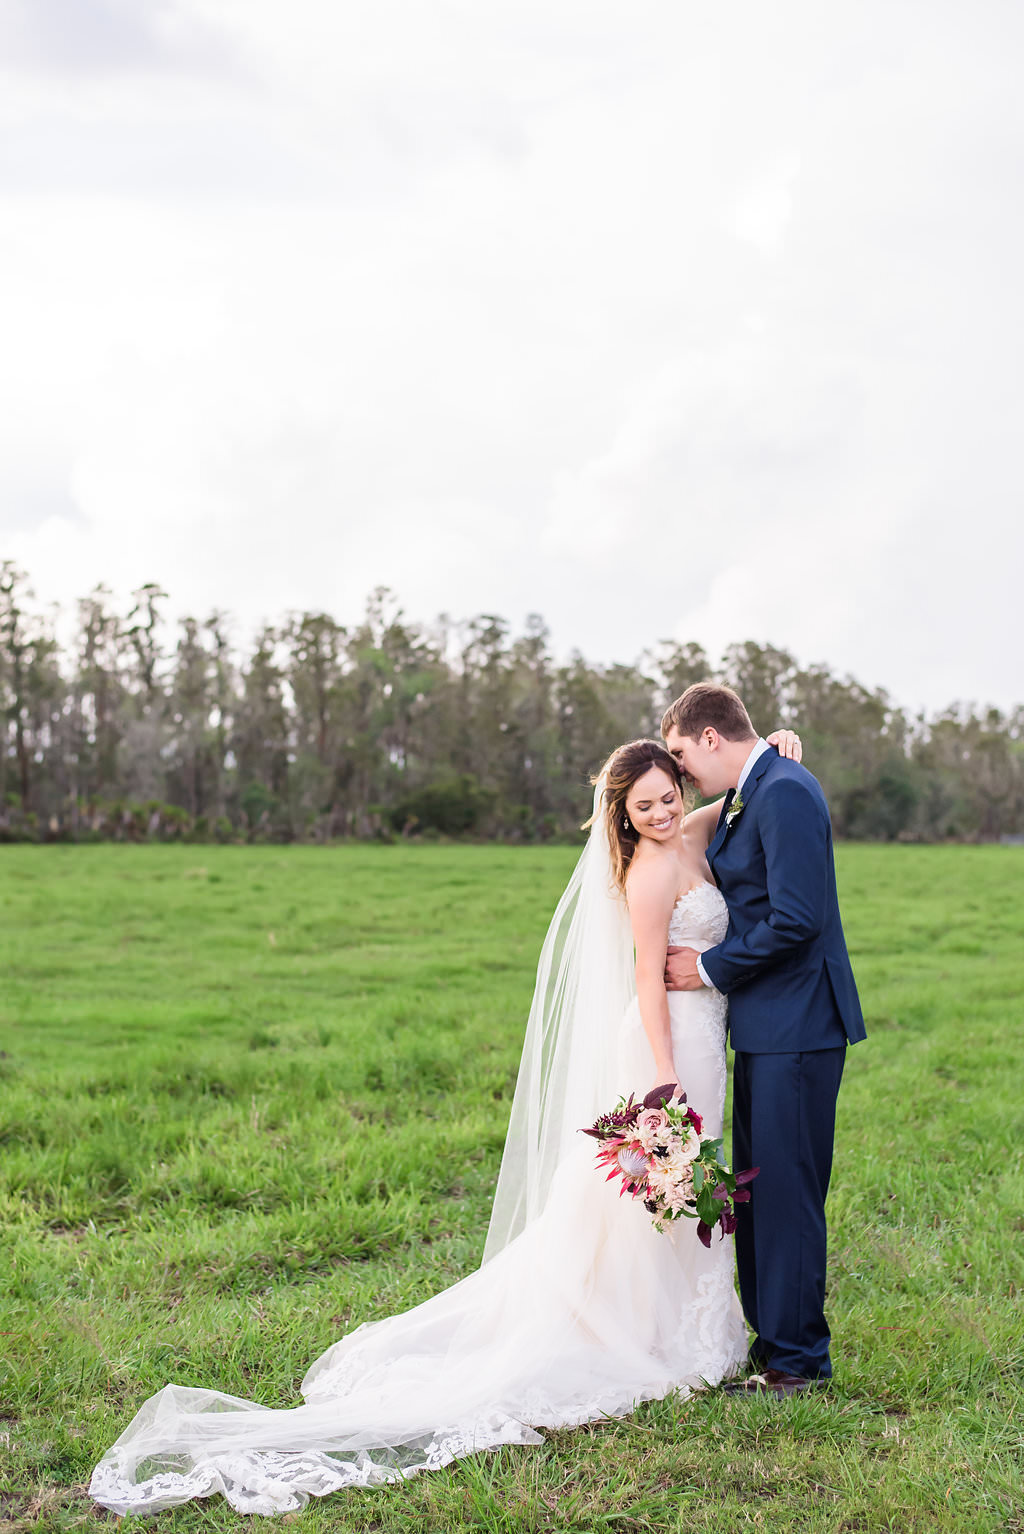 Outdoor Farm Wedding Bride and Groom Portrait, Groom in Navy Blue Suit, with Marsala Red Protea Bouquet with Greenery and BLush Pink Florals